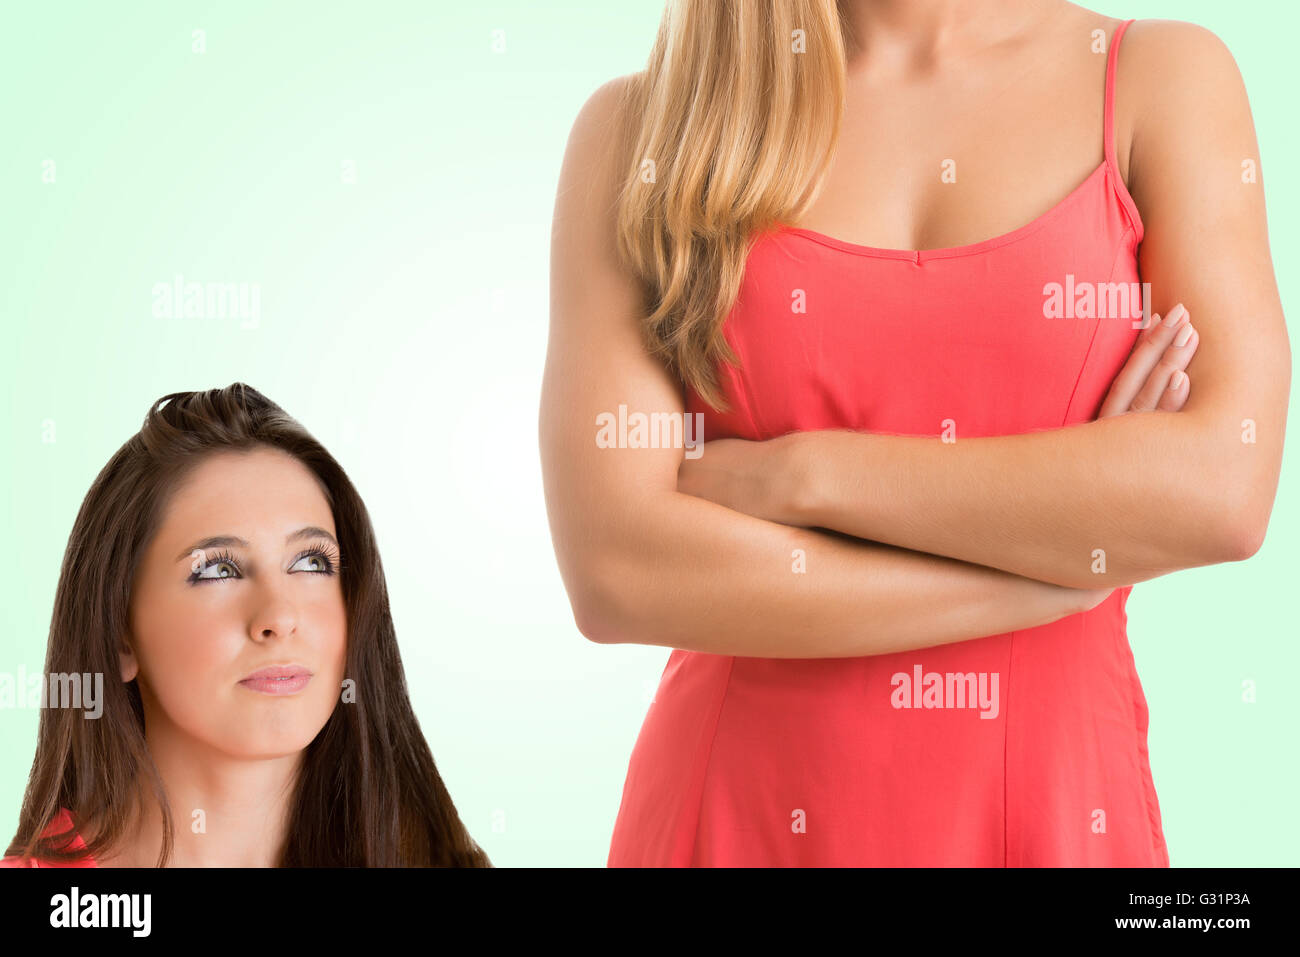 Height difference between two women in a green background - Stock Image